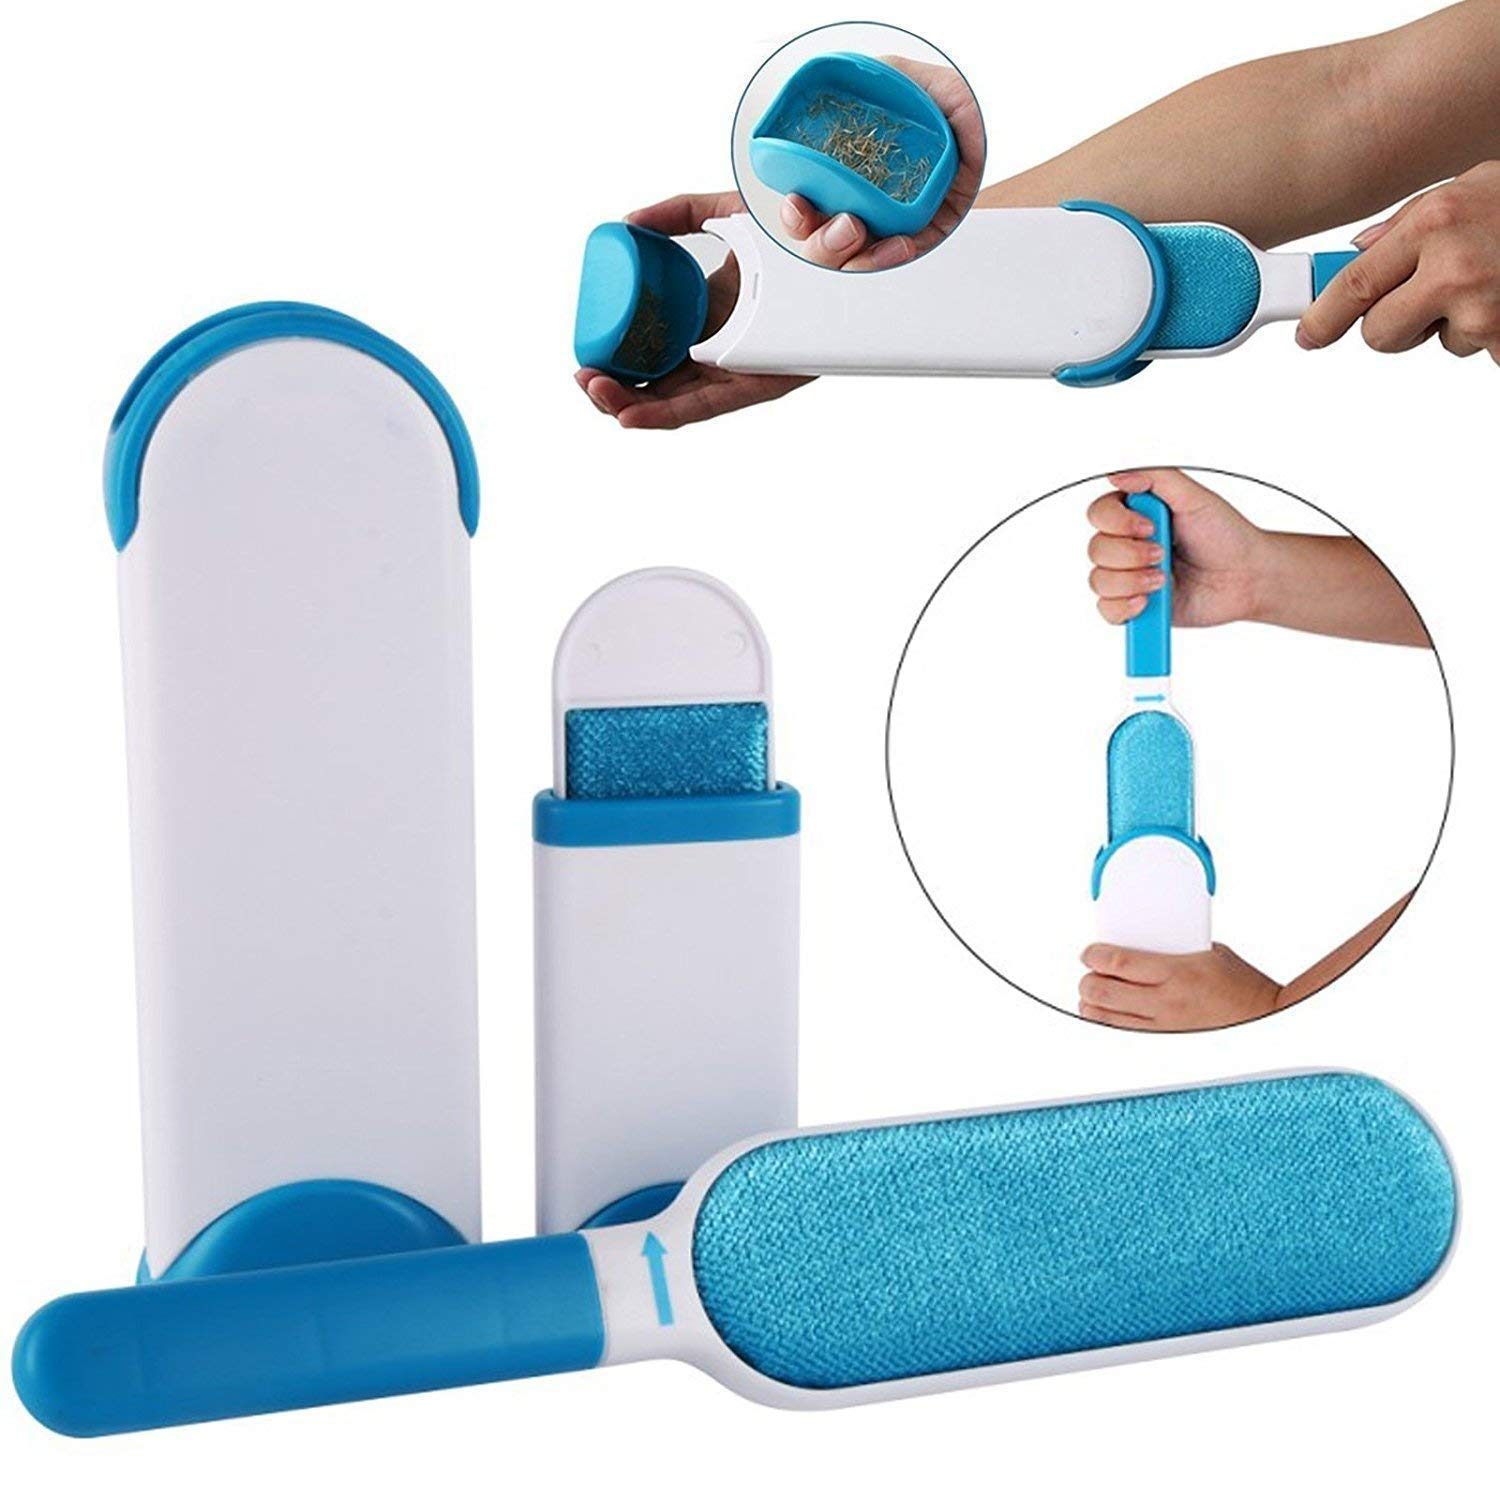 Pet Fur and Lint Remover Pet Hair Remover Multi-Purpose Double Sided  Self-Cleaning and Reusable Pet Fur Remover Magic Clean Clothing| Furniture|  Home Clean Brus - Quantity Wala